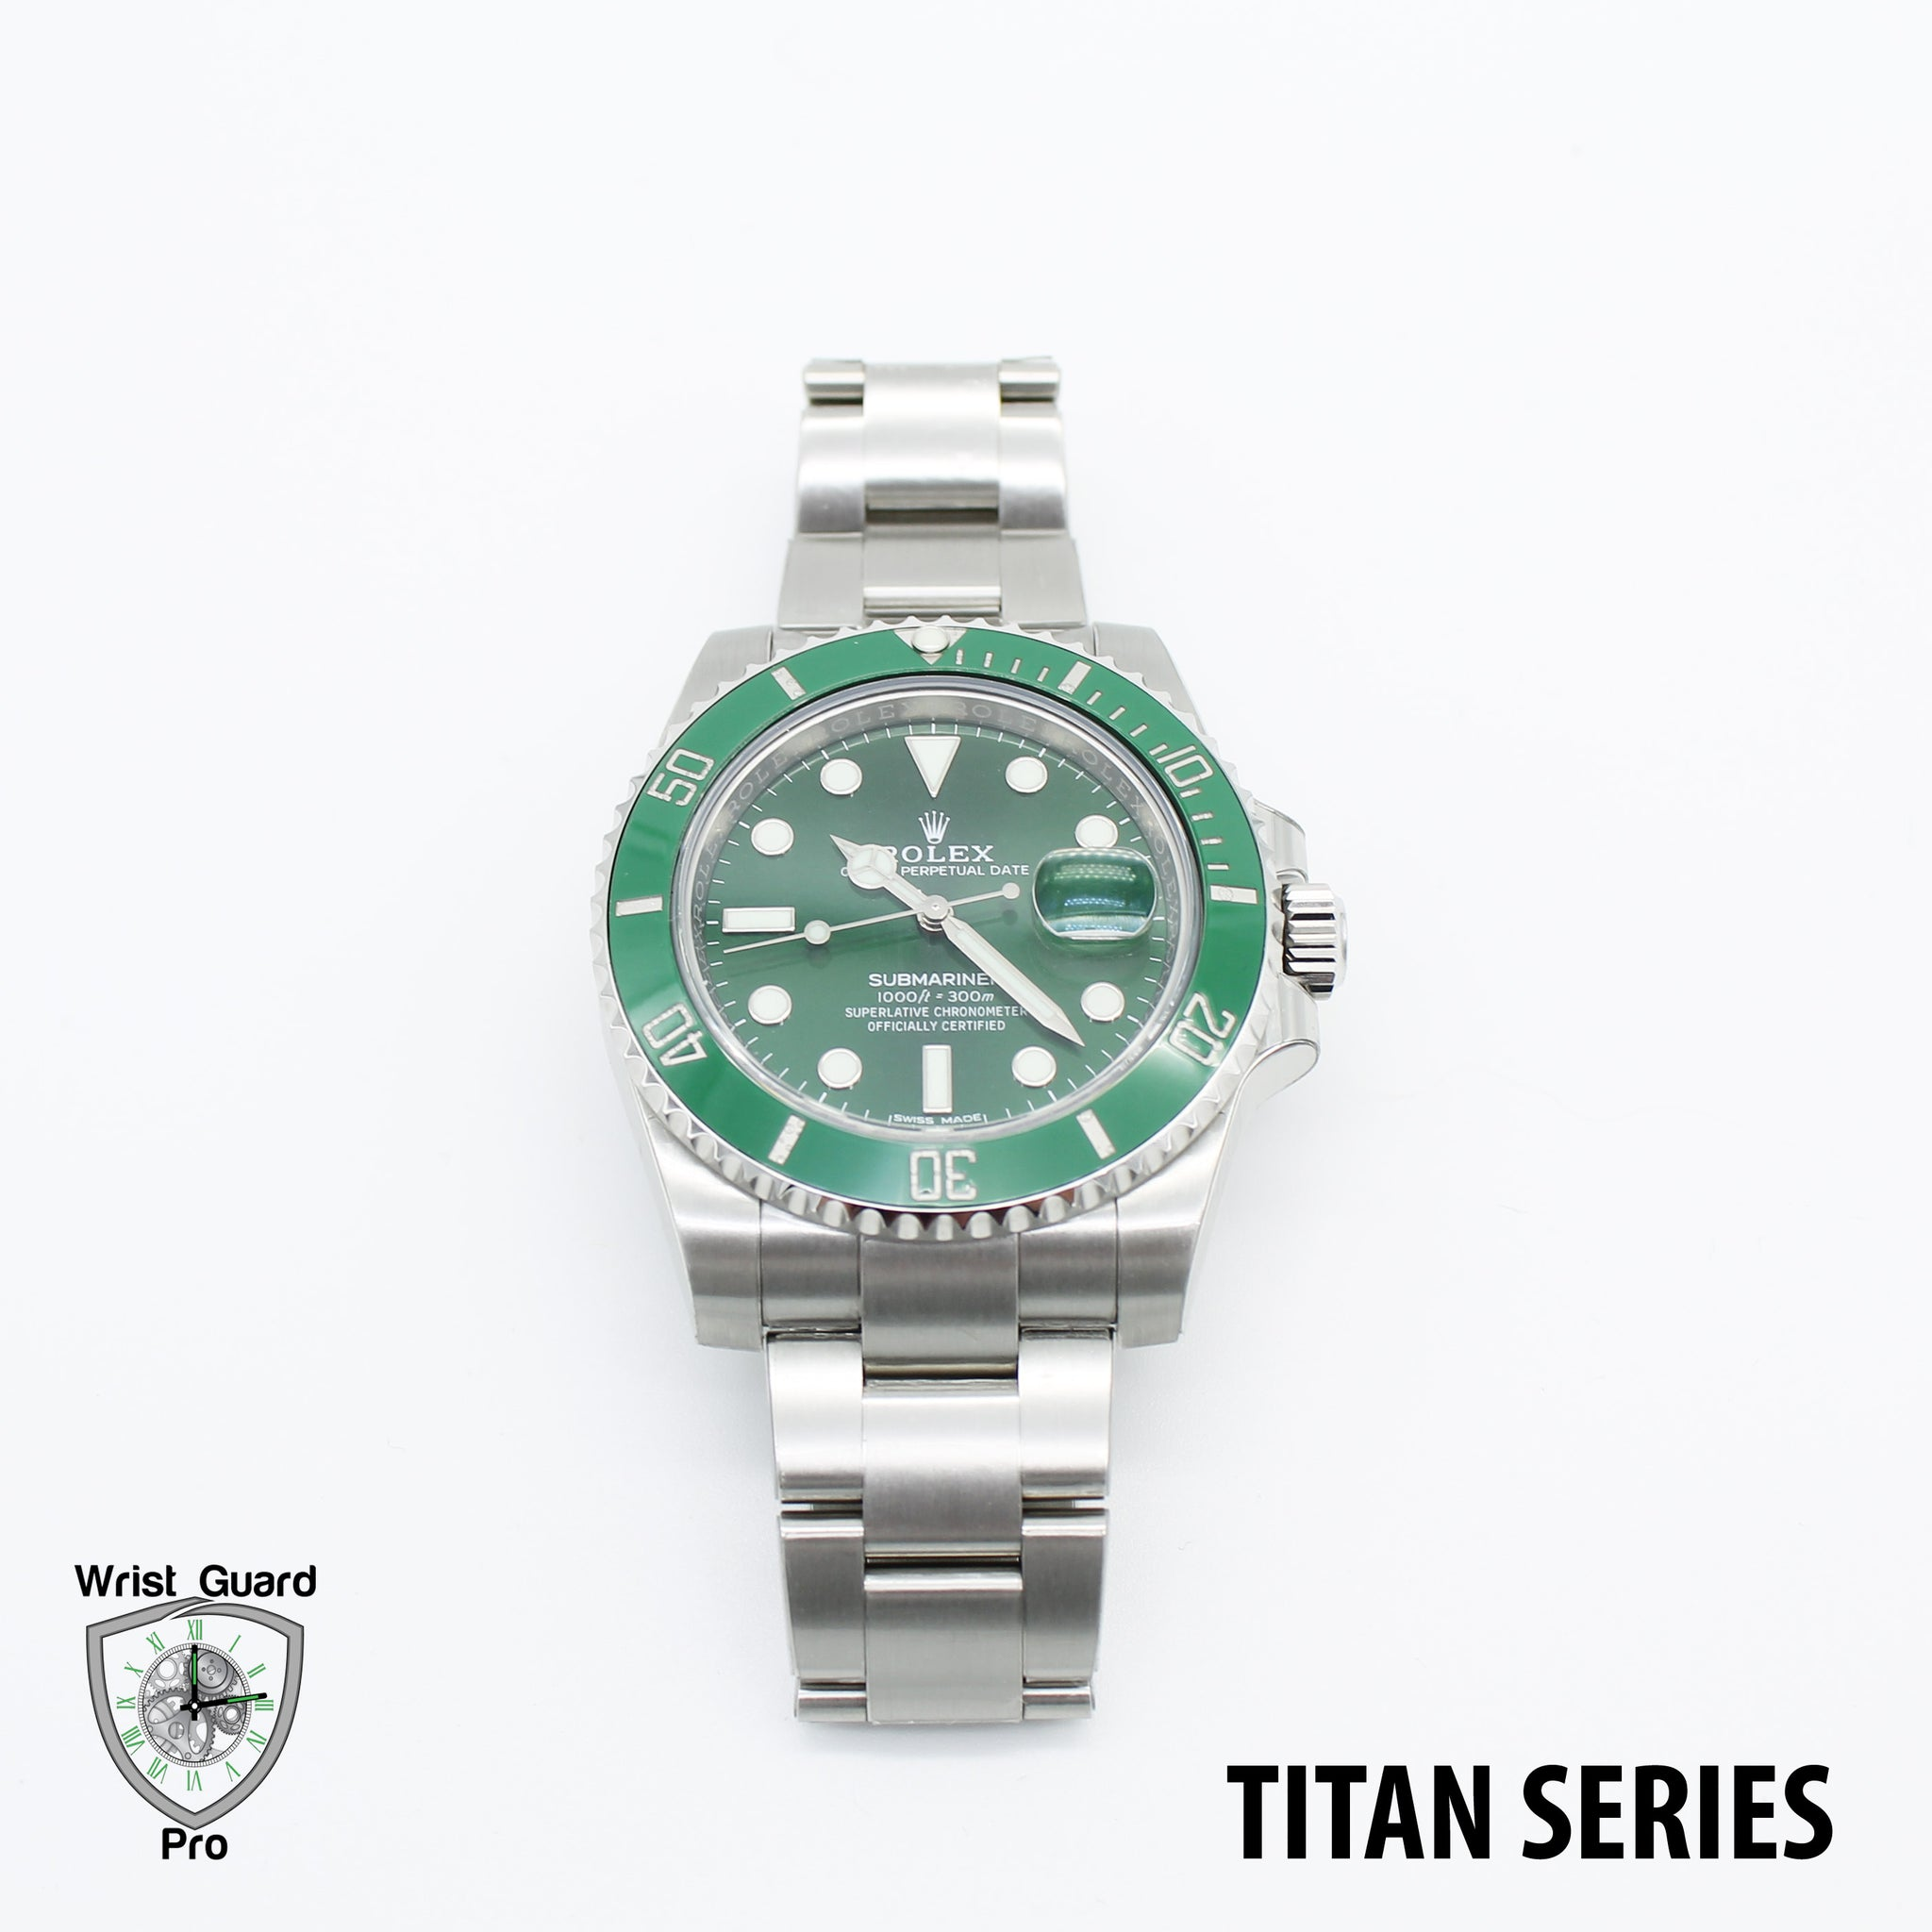 Rolex Submariner Date Ceramic 116610 TITAN Series Protection